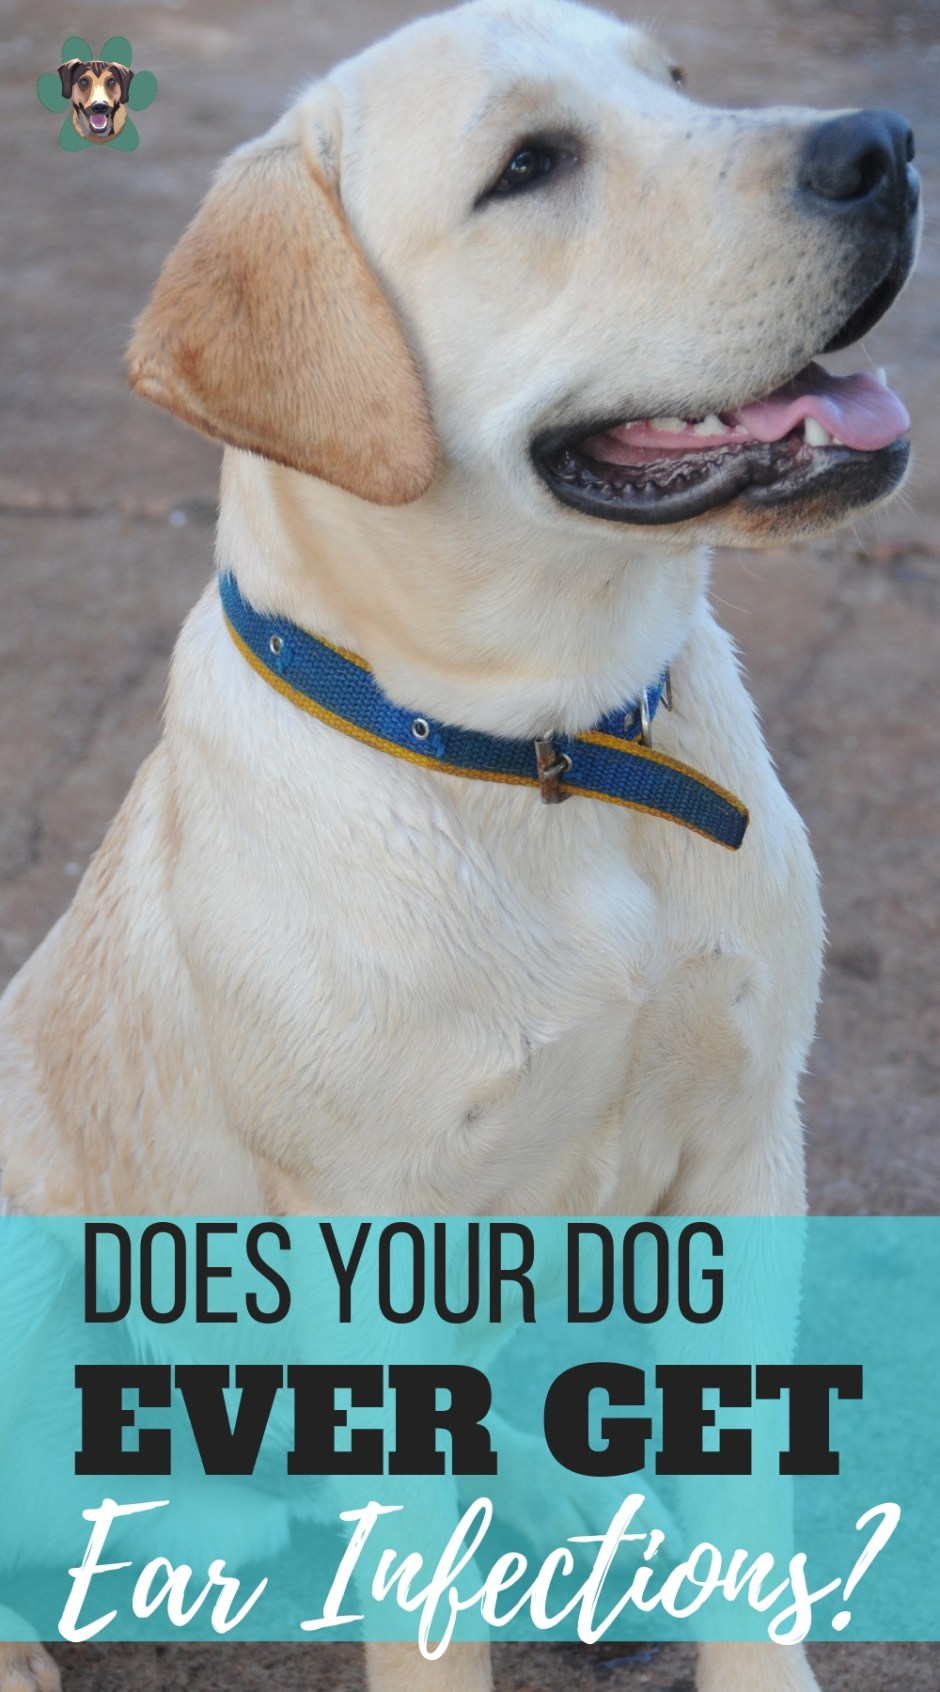 One of the widely known canine health problems is dog ear infection and if we don't take care of it properly, they can become one of the hardest canine problems to deal with. They can repeat again and again, for years… Ear infections do not spontaneously occur. So how do you deal with dog ear infections?